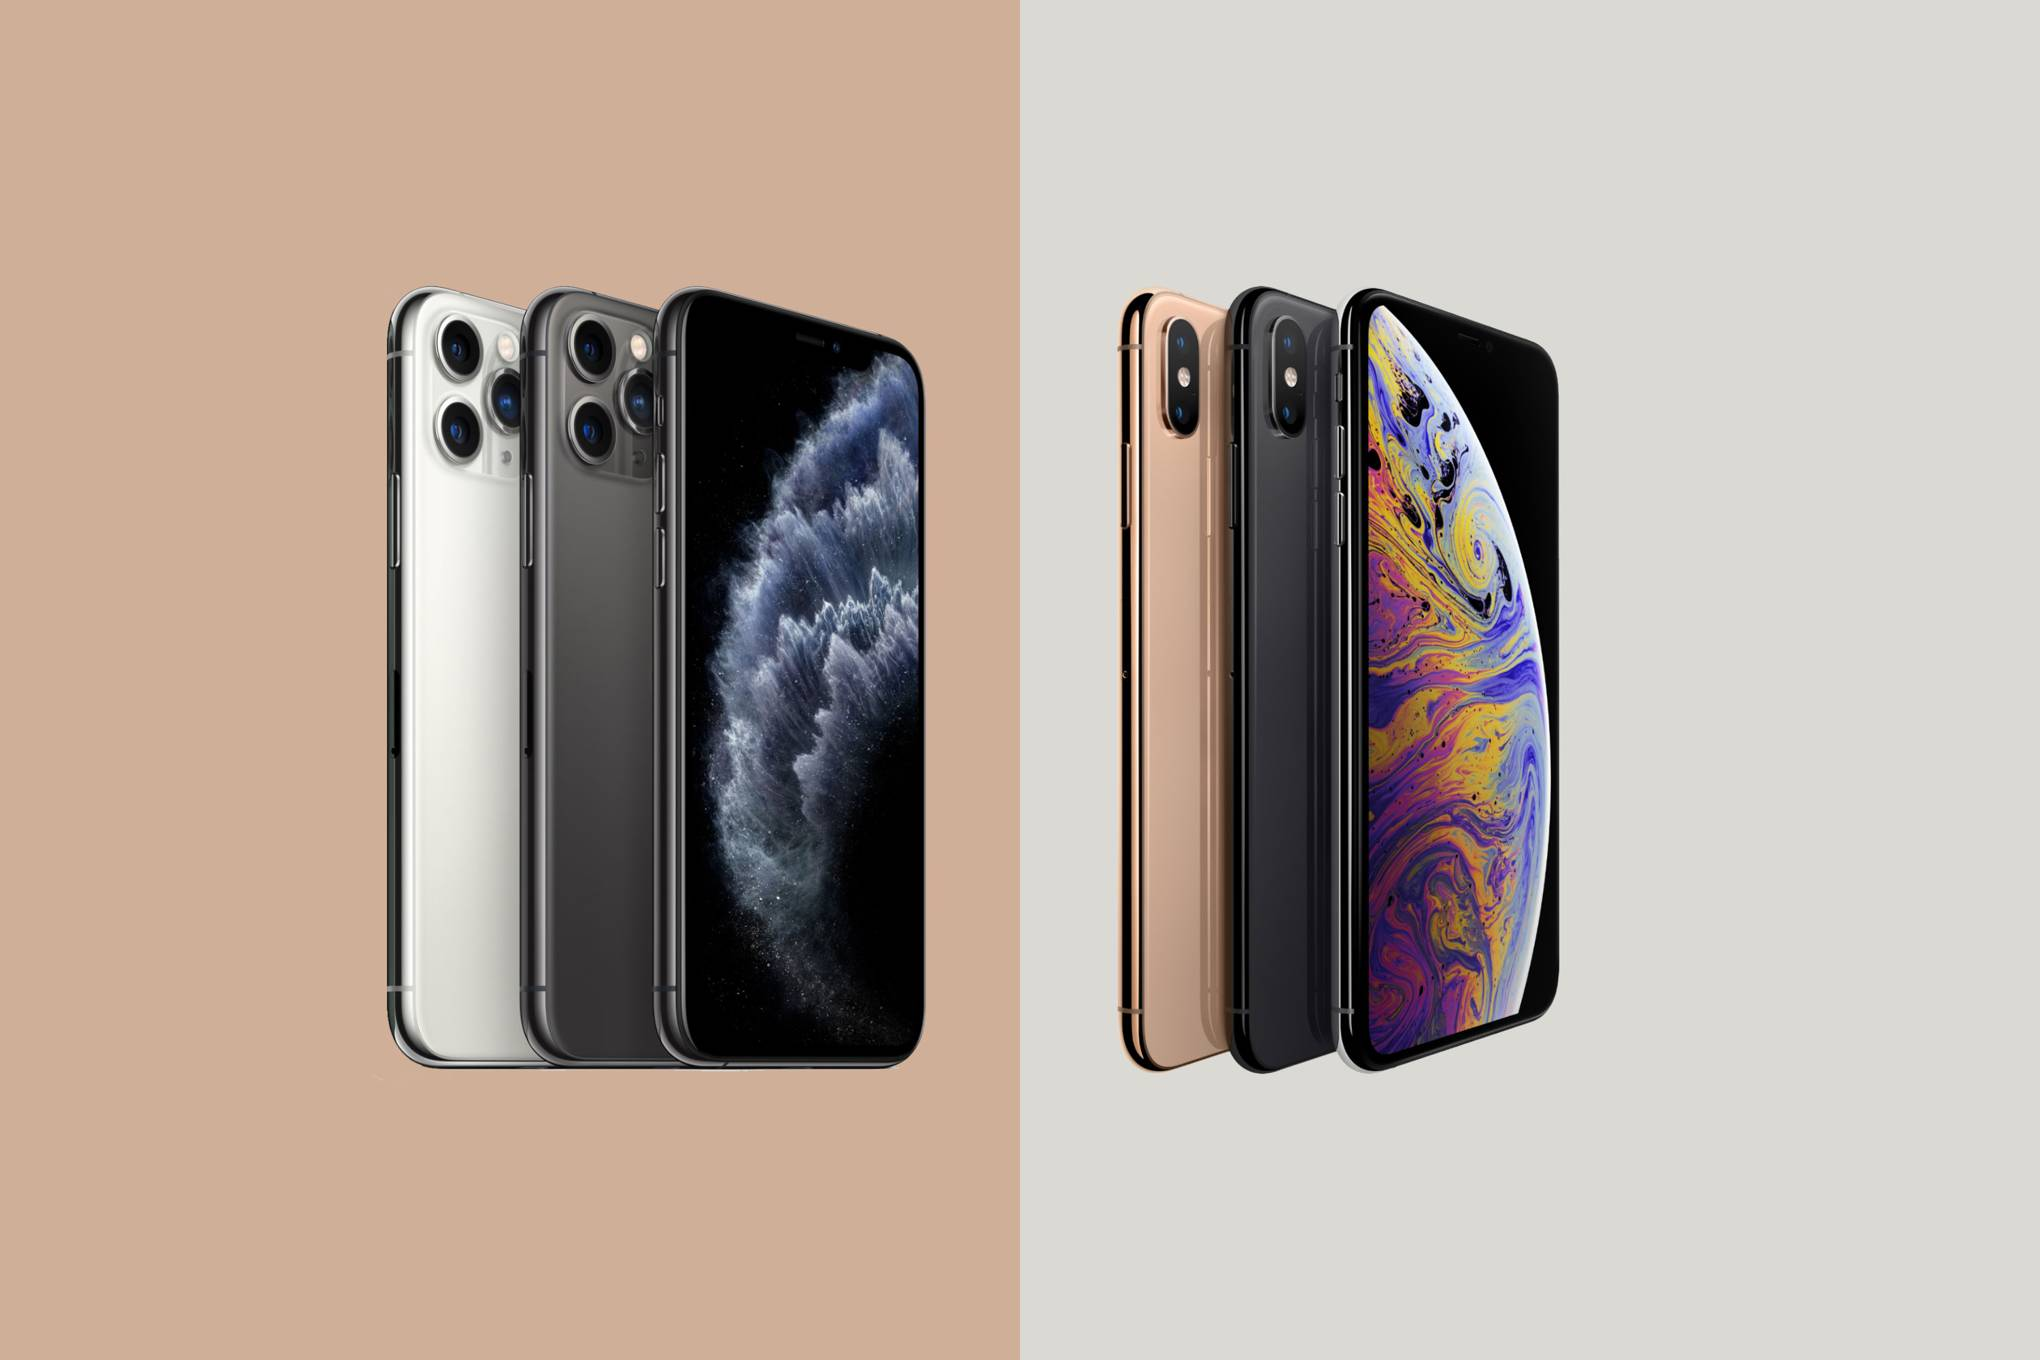 Iphone 11 Vs Iphone Xs Vs Iphone Xr Should You Upgrade This Year Wired Uk